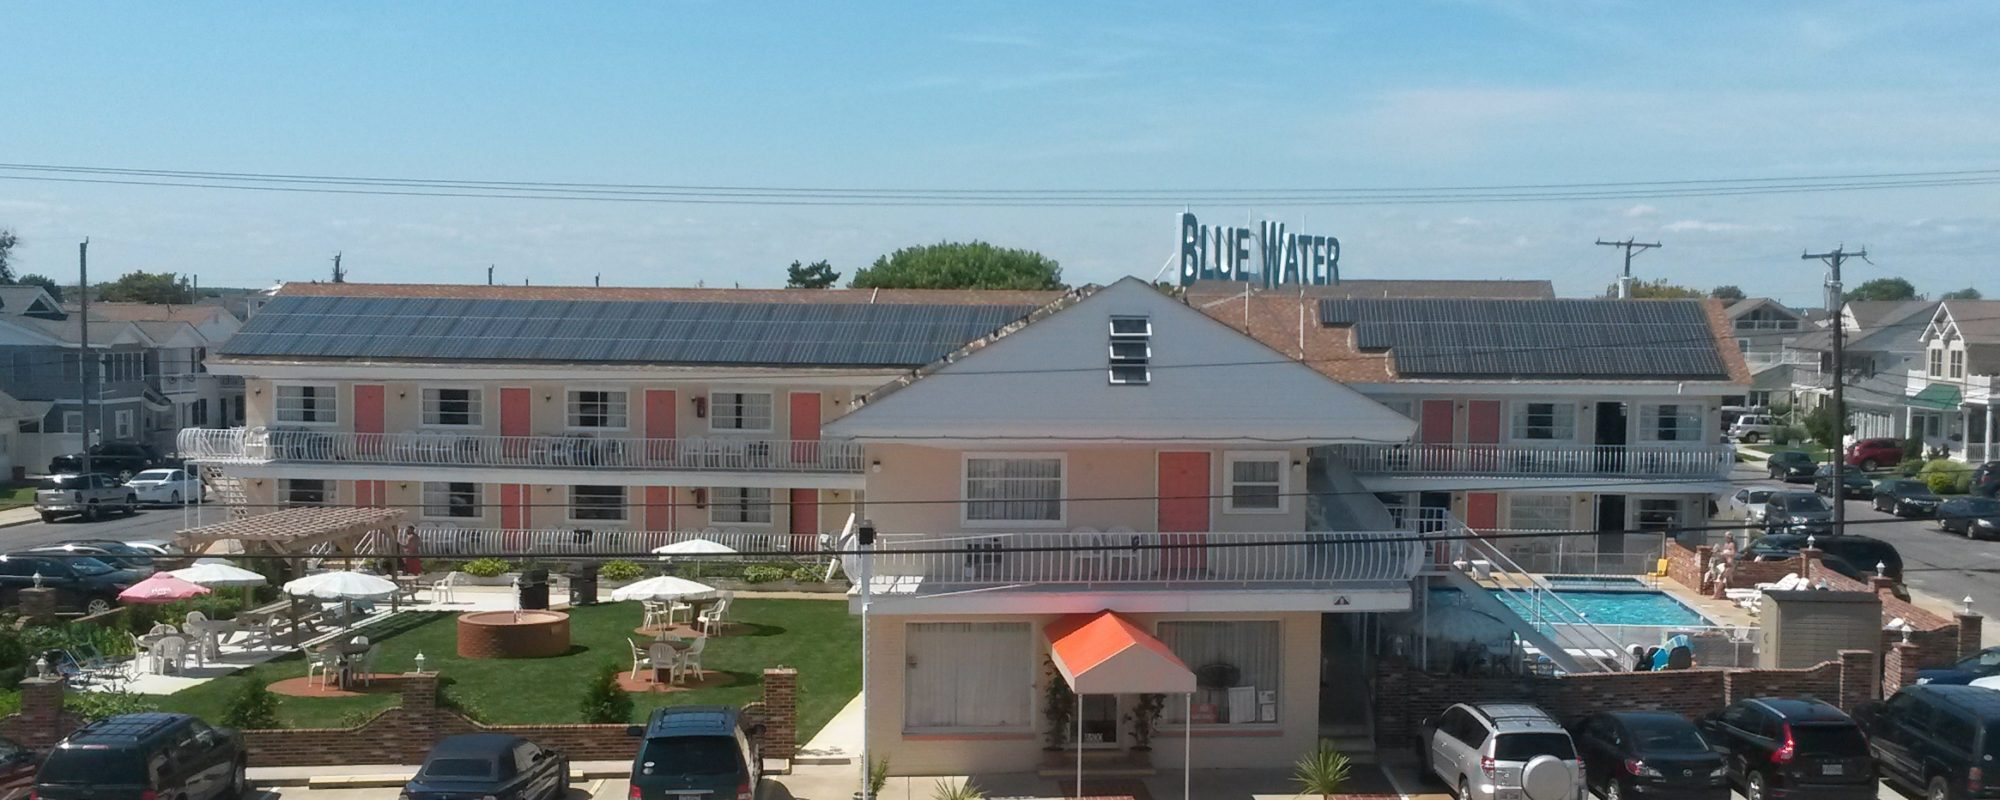 Blue Water picture Front View 2014 summer